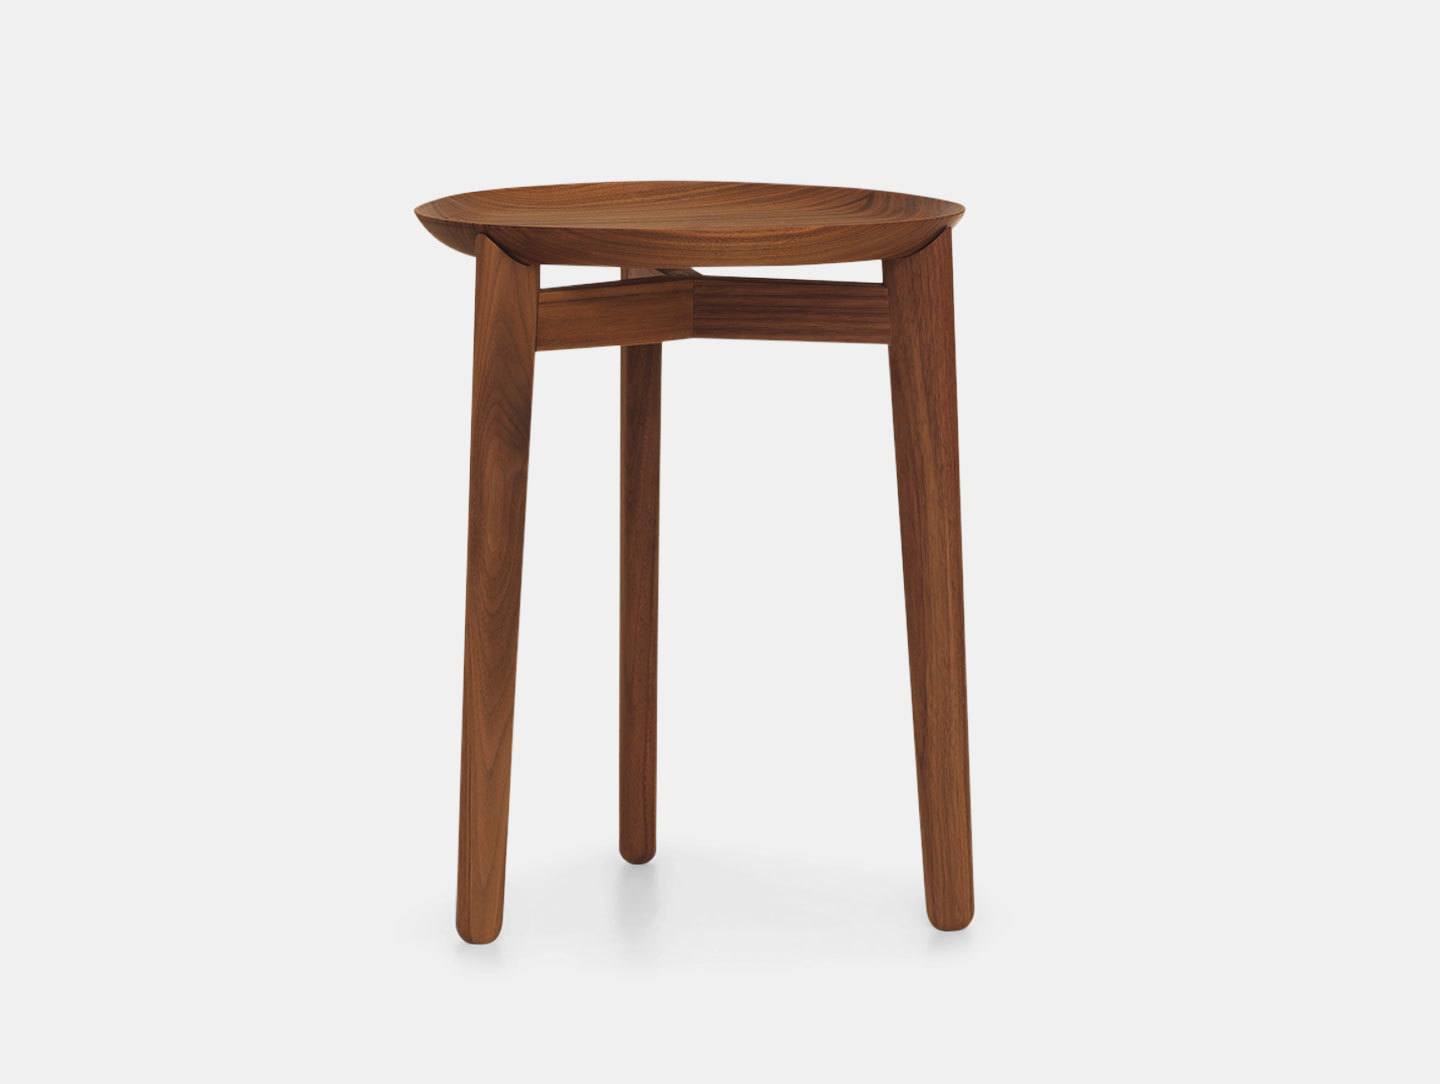 Zeitraum Plaisir Table Walnut Dia35 H46 Formstelle